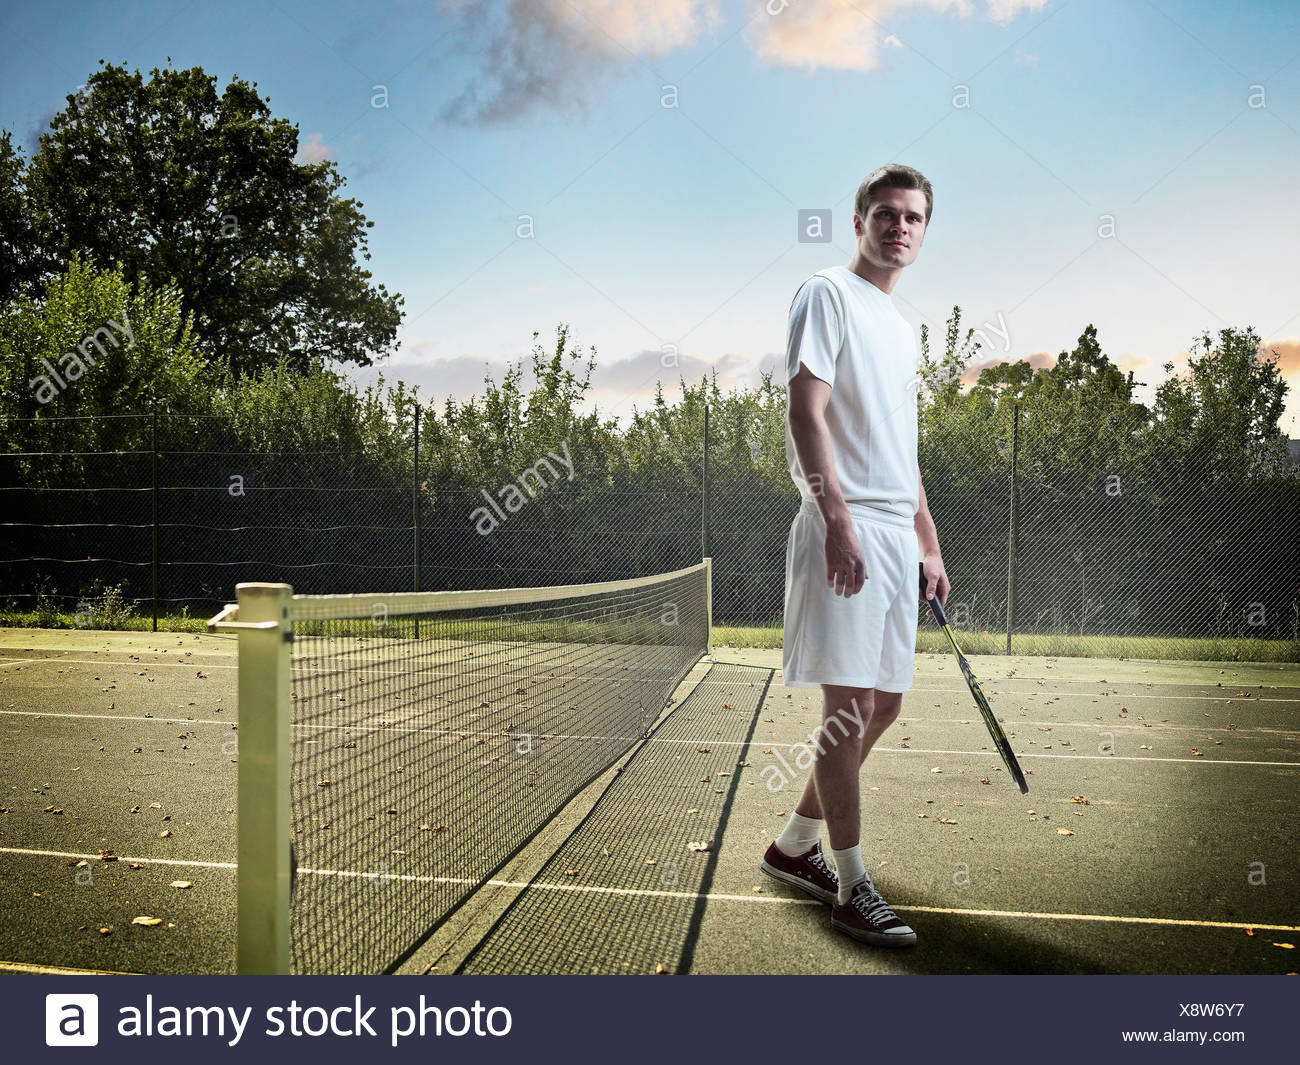 Man standing on tennis court - Stock Image